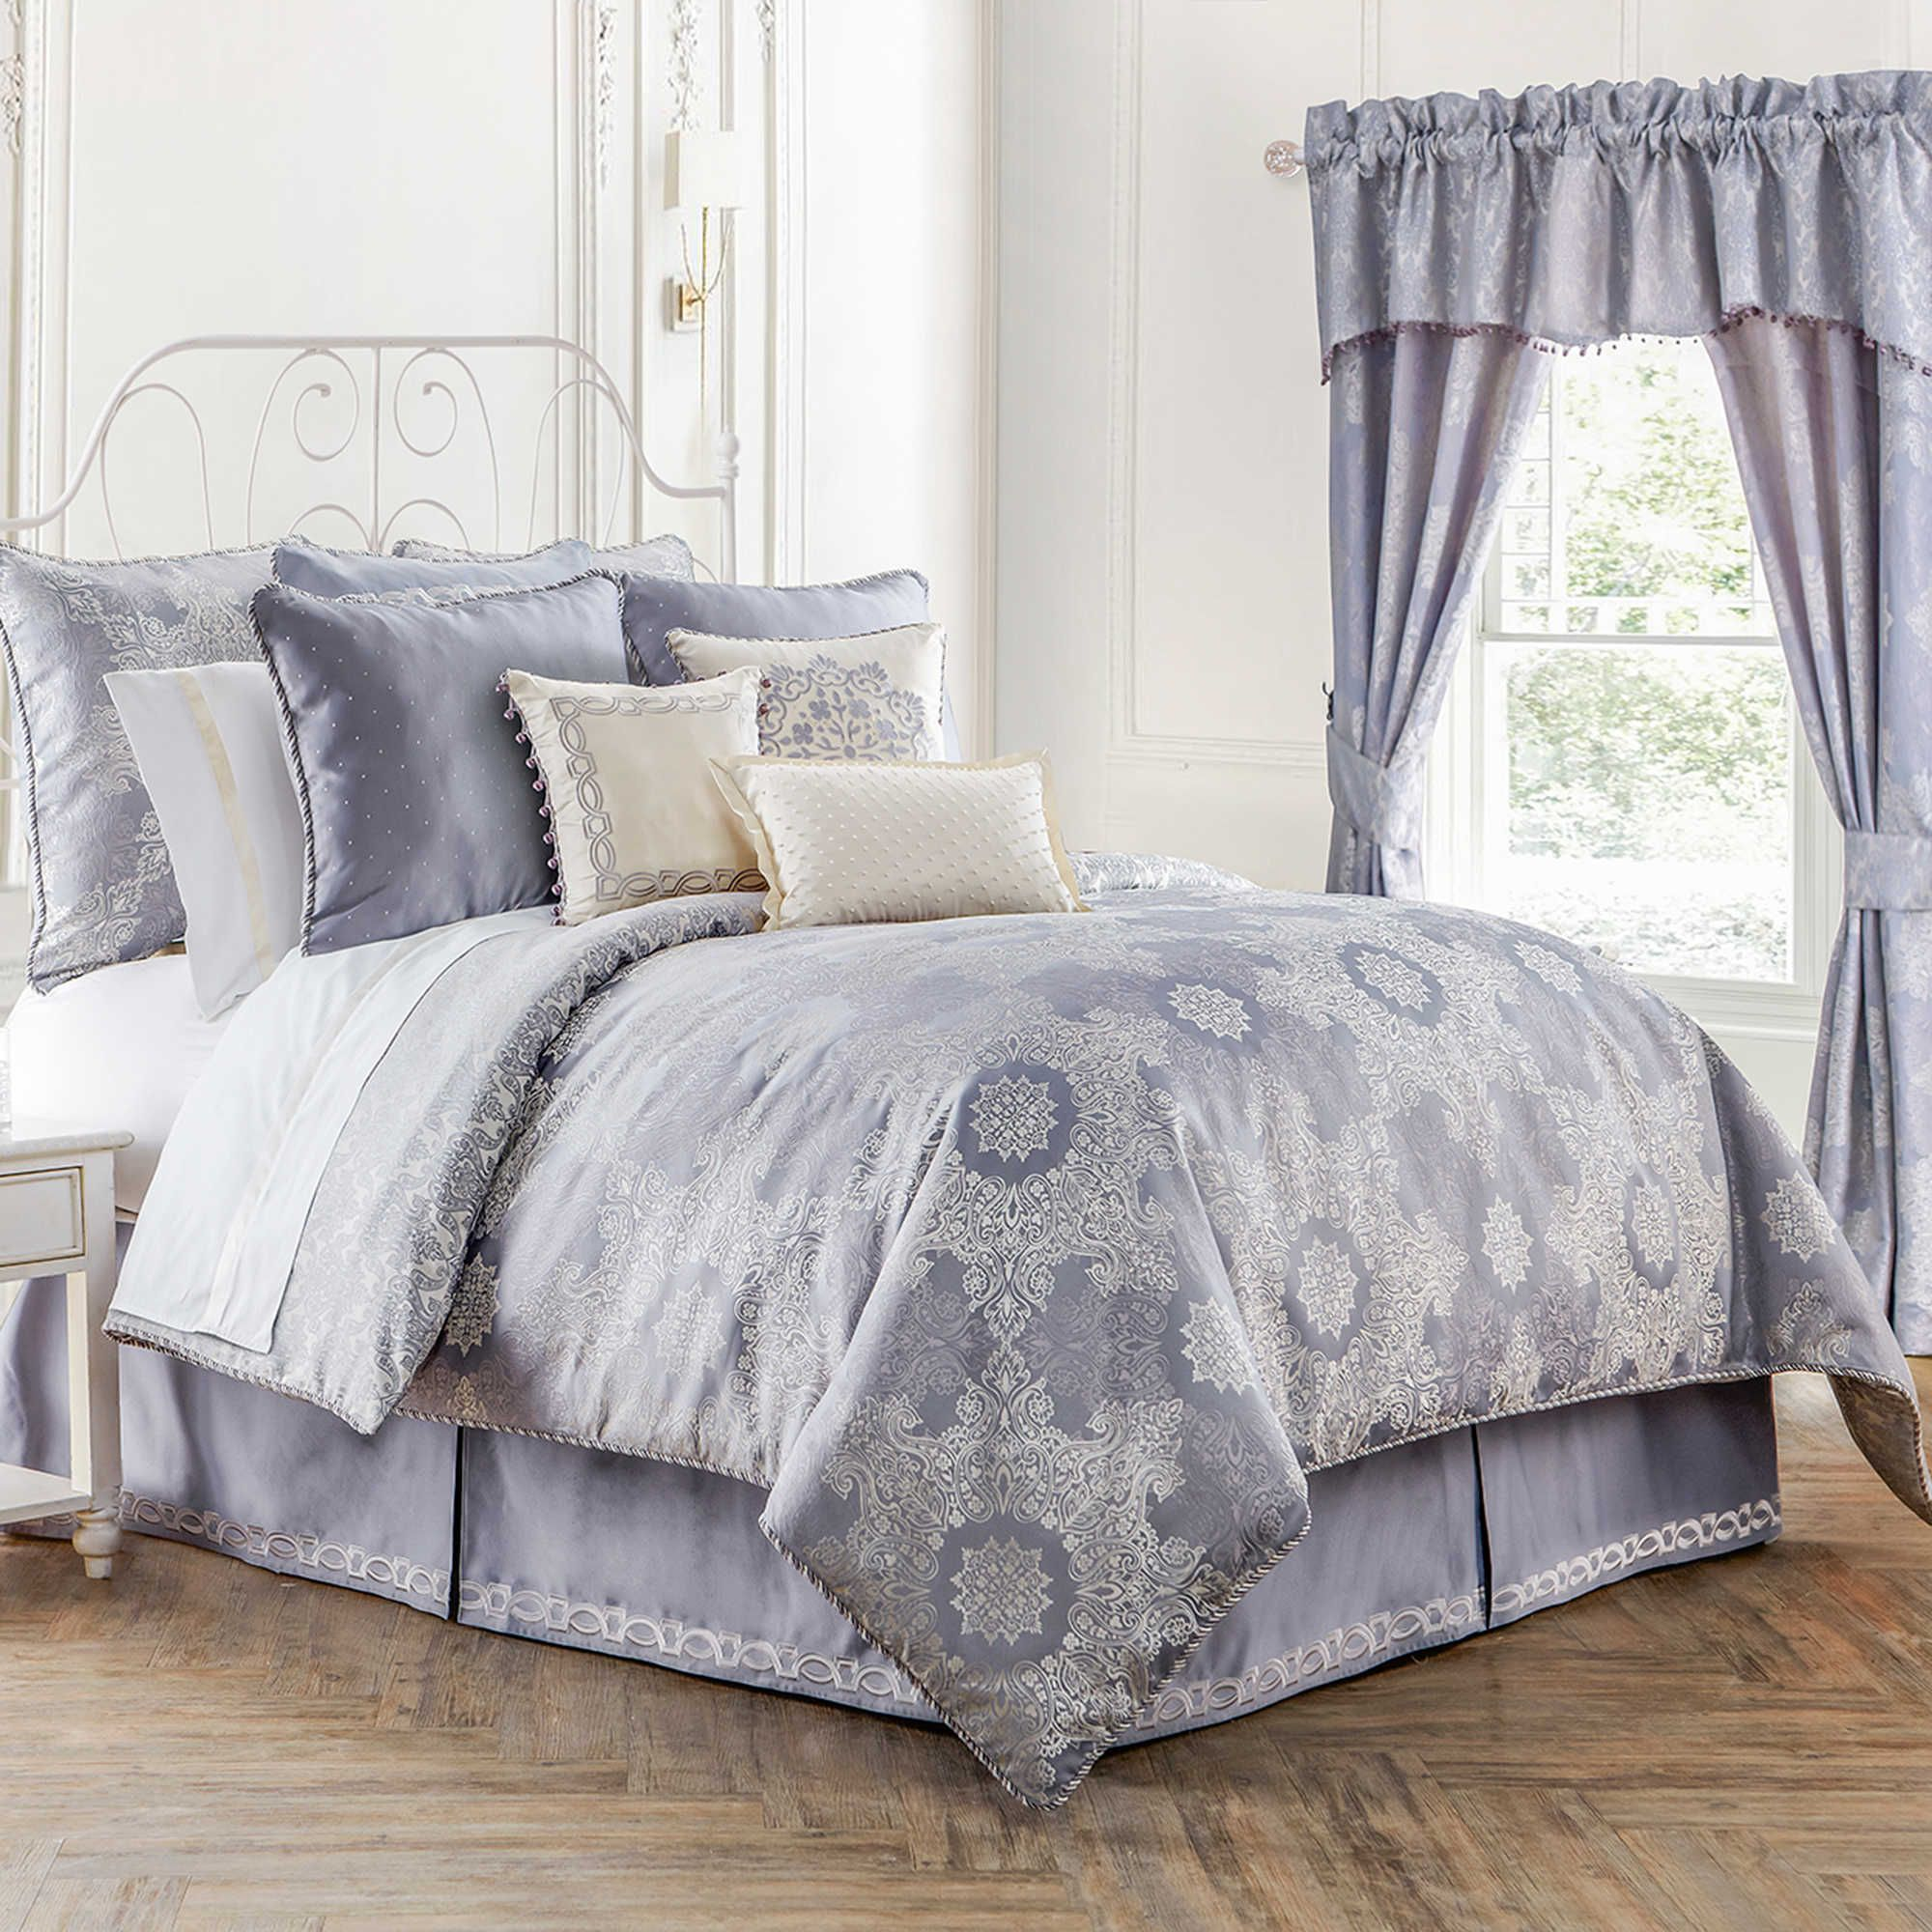 glass free bedding piece new overstock shipping product set sea soho home today cotton york comforter bath hotel